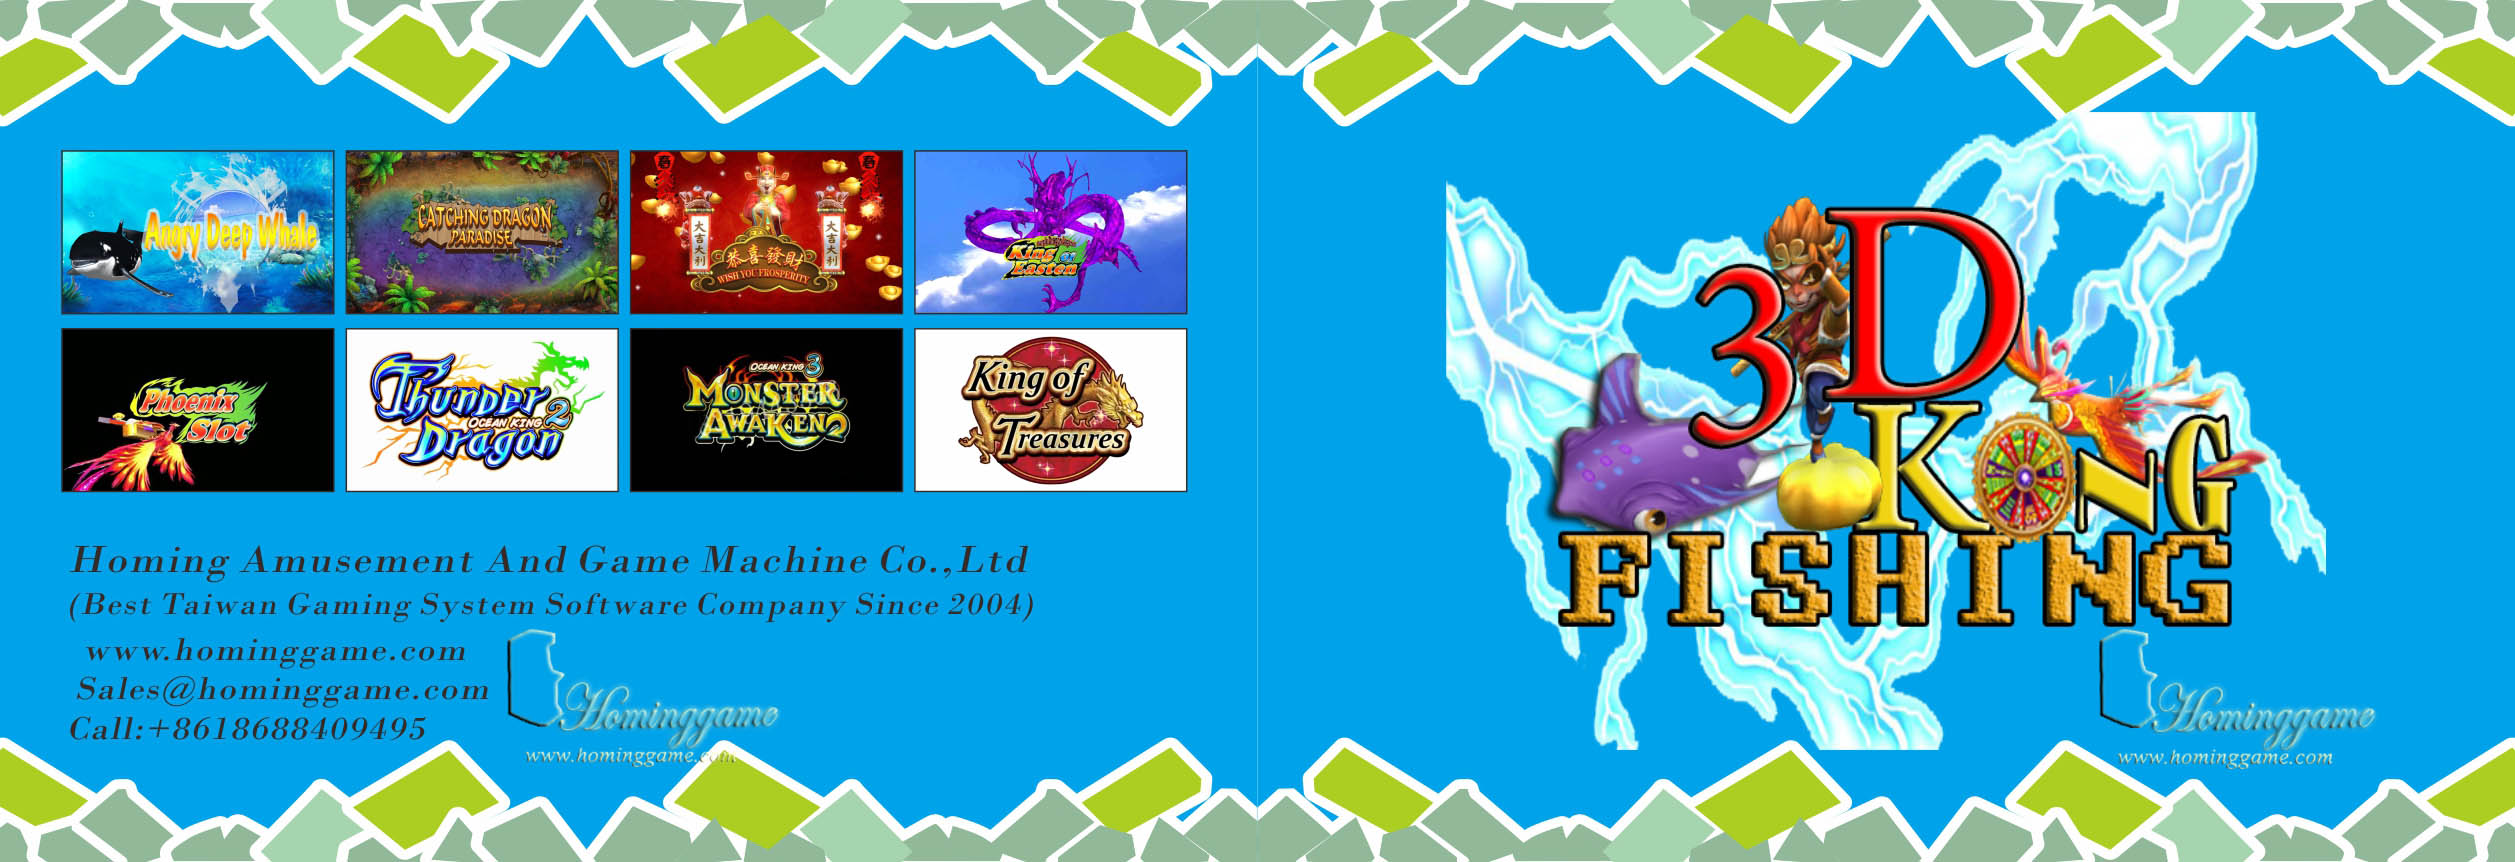 Fishing Game,Fishing Game Machine Supplier,3D KONG Fishing Arcade Table Game Machine,Kong Fishing Game Machine,2018 Newest 2 IN 1 Jackpot Fishing Game,Kong,Kong Fishing Game Machine,Kong Fishing Table Game Machine,Kong Jackpot Fishing Game Machine,Jackpot Fishing Game Machine,Fishing Game Machine,Fishing Table Game Machine,Dragon King Fishing Game Machine,WuKong Fishing Game Machine,Coin operated Fishing Game Machine,Game Machine,Gaming Machine,Gambling Machine,Electrical Slot Gaming Machine,Amusement Park Game Euipment,Family Entertainment,Entertainment Game Machine,Arcade Game Machine